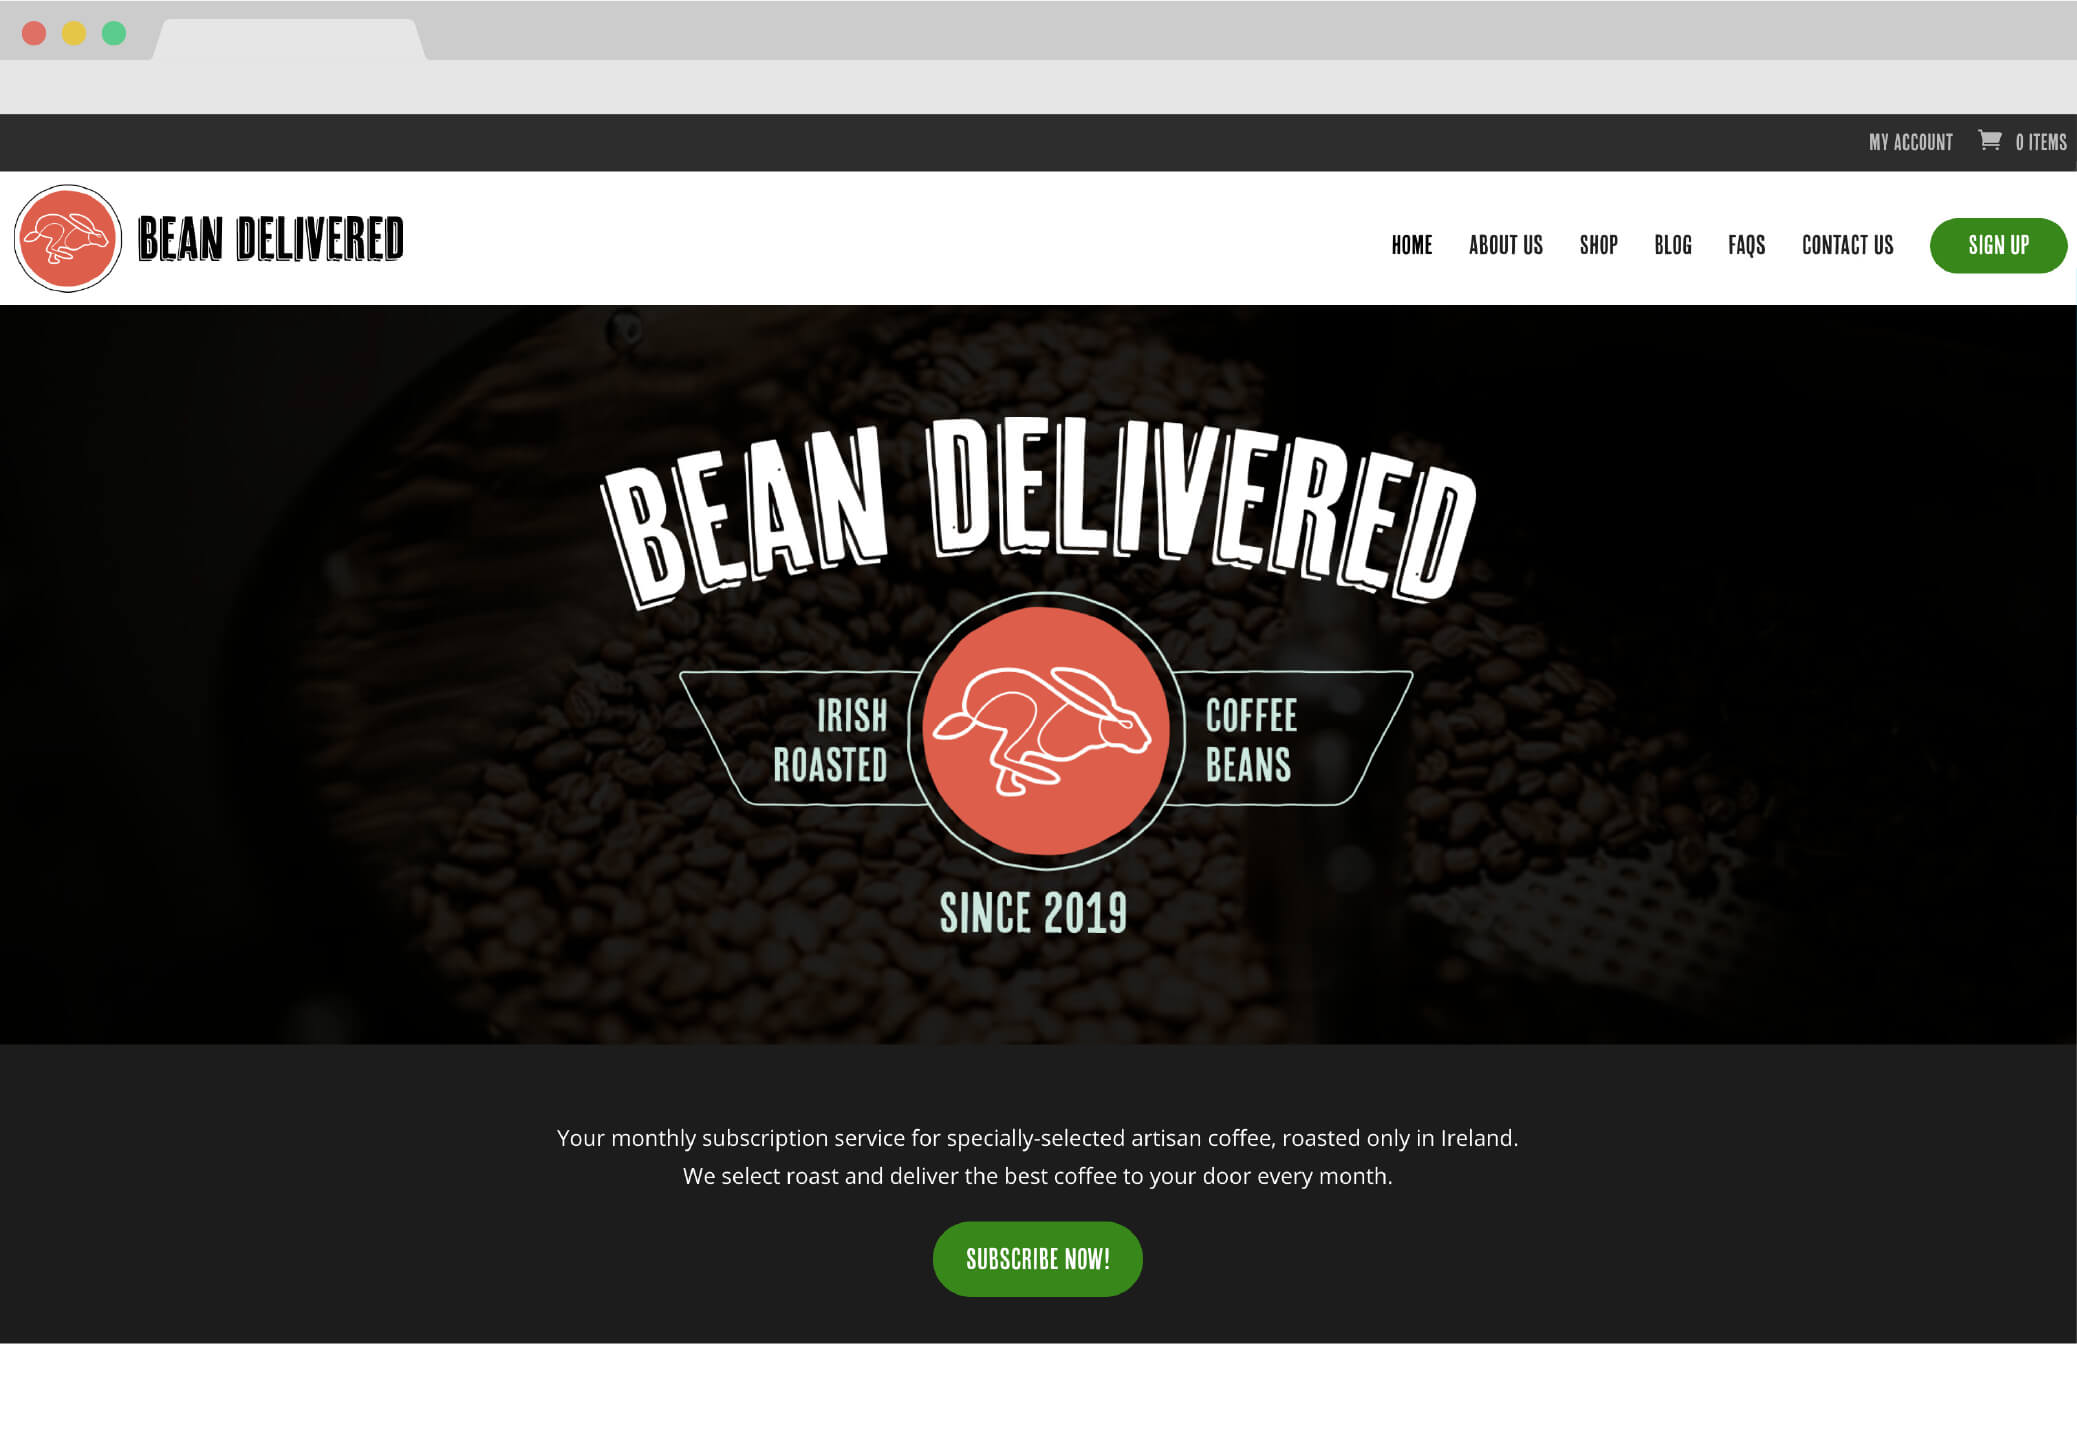 Bean Delivered Screen Grab